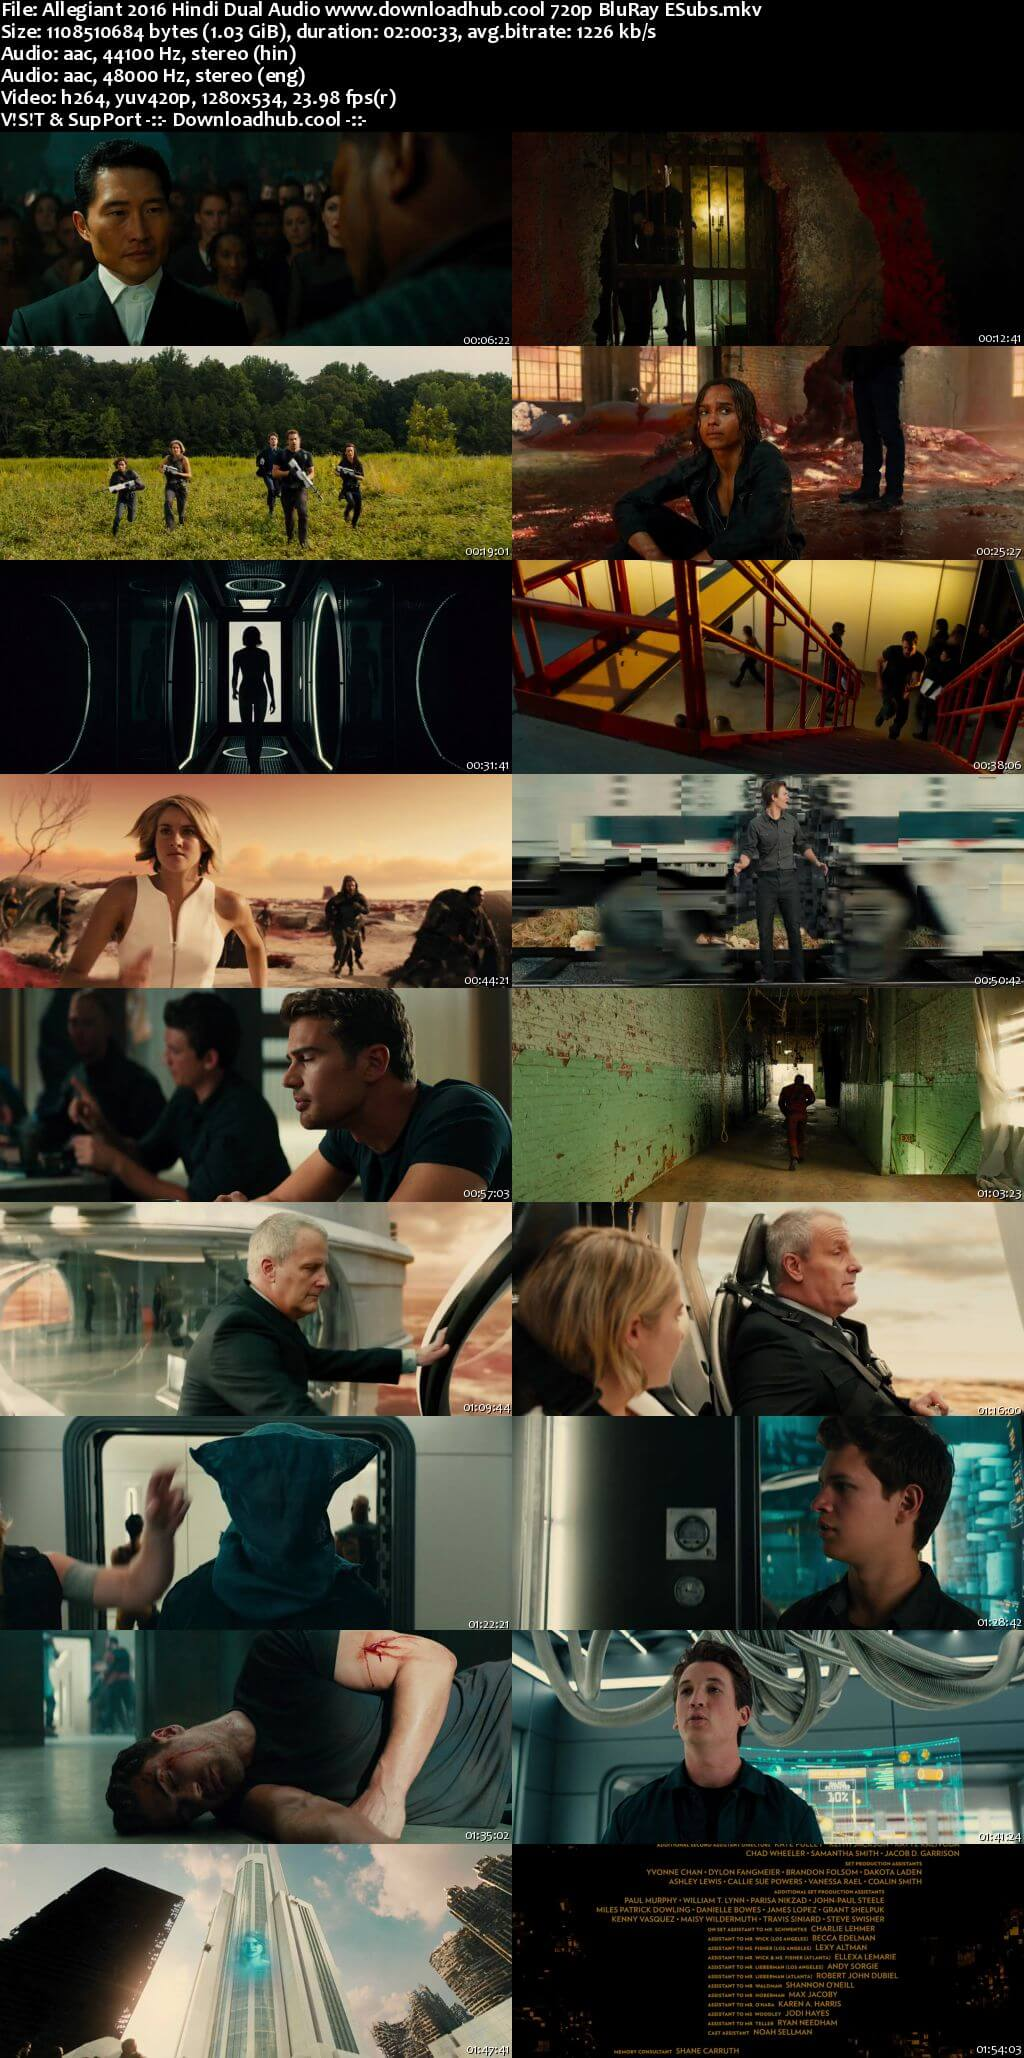 Allegiant 2016 Hindi Dual Audio 720p BluRay ESubs